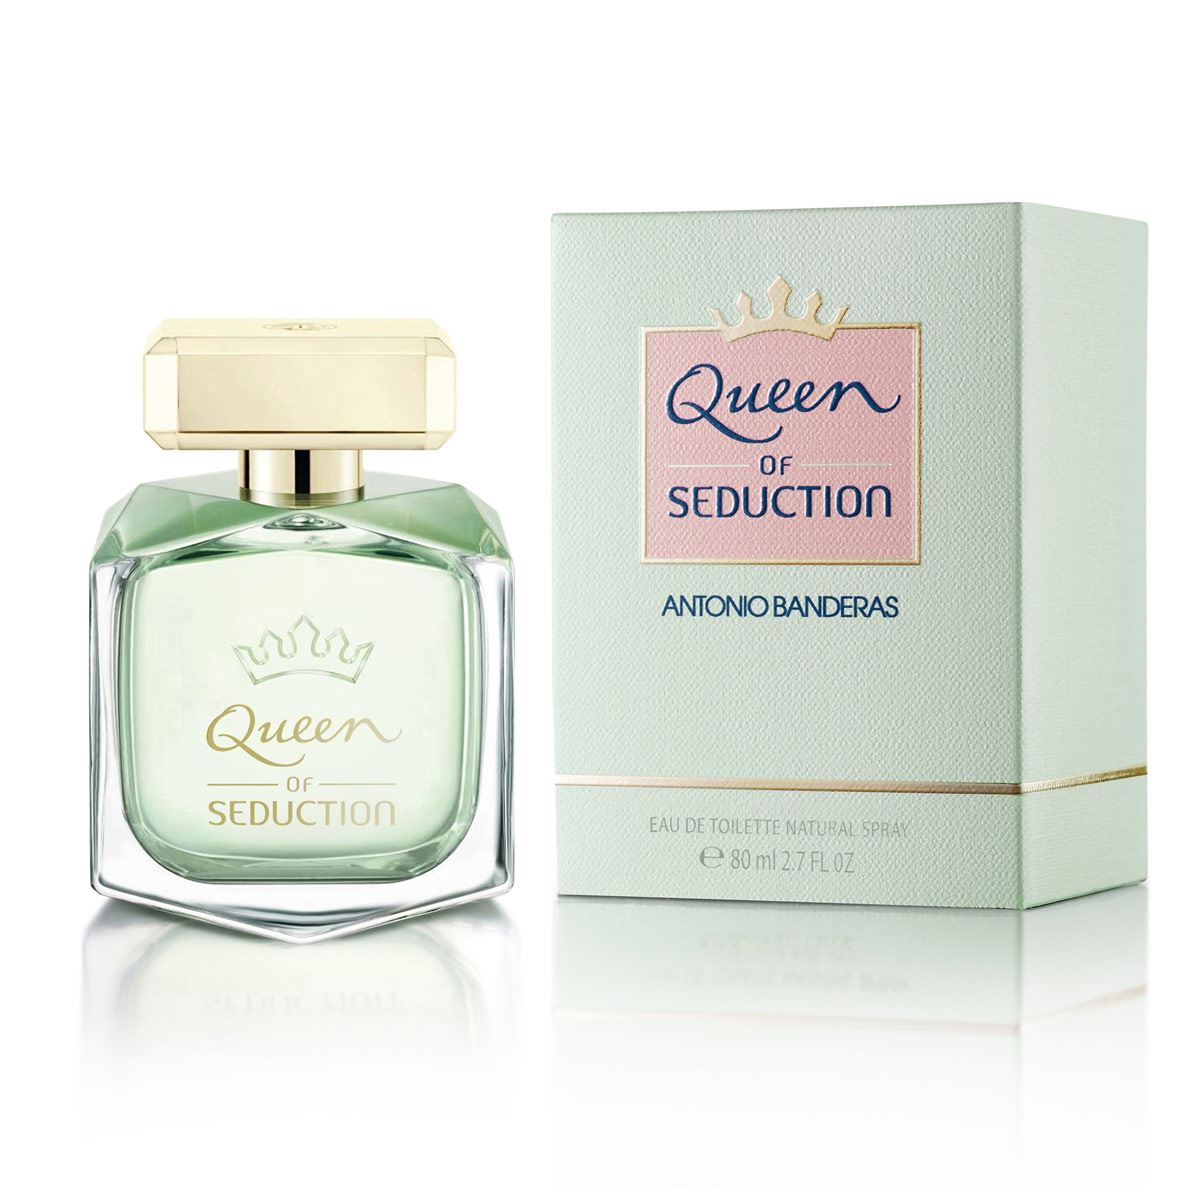 Fragancia para dama antonio banderas queen of seduction edt 80 ml  - Sanborns